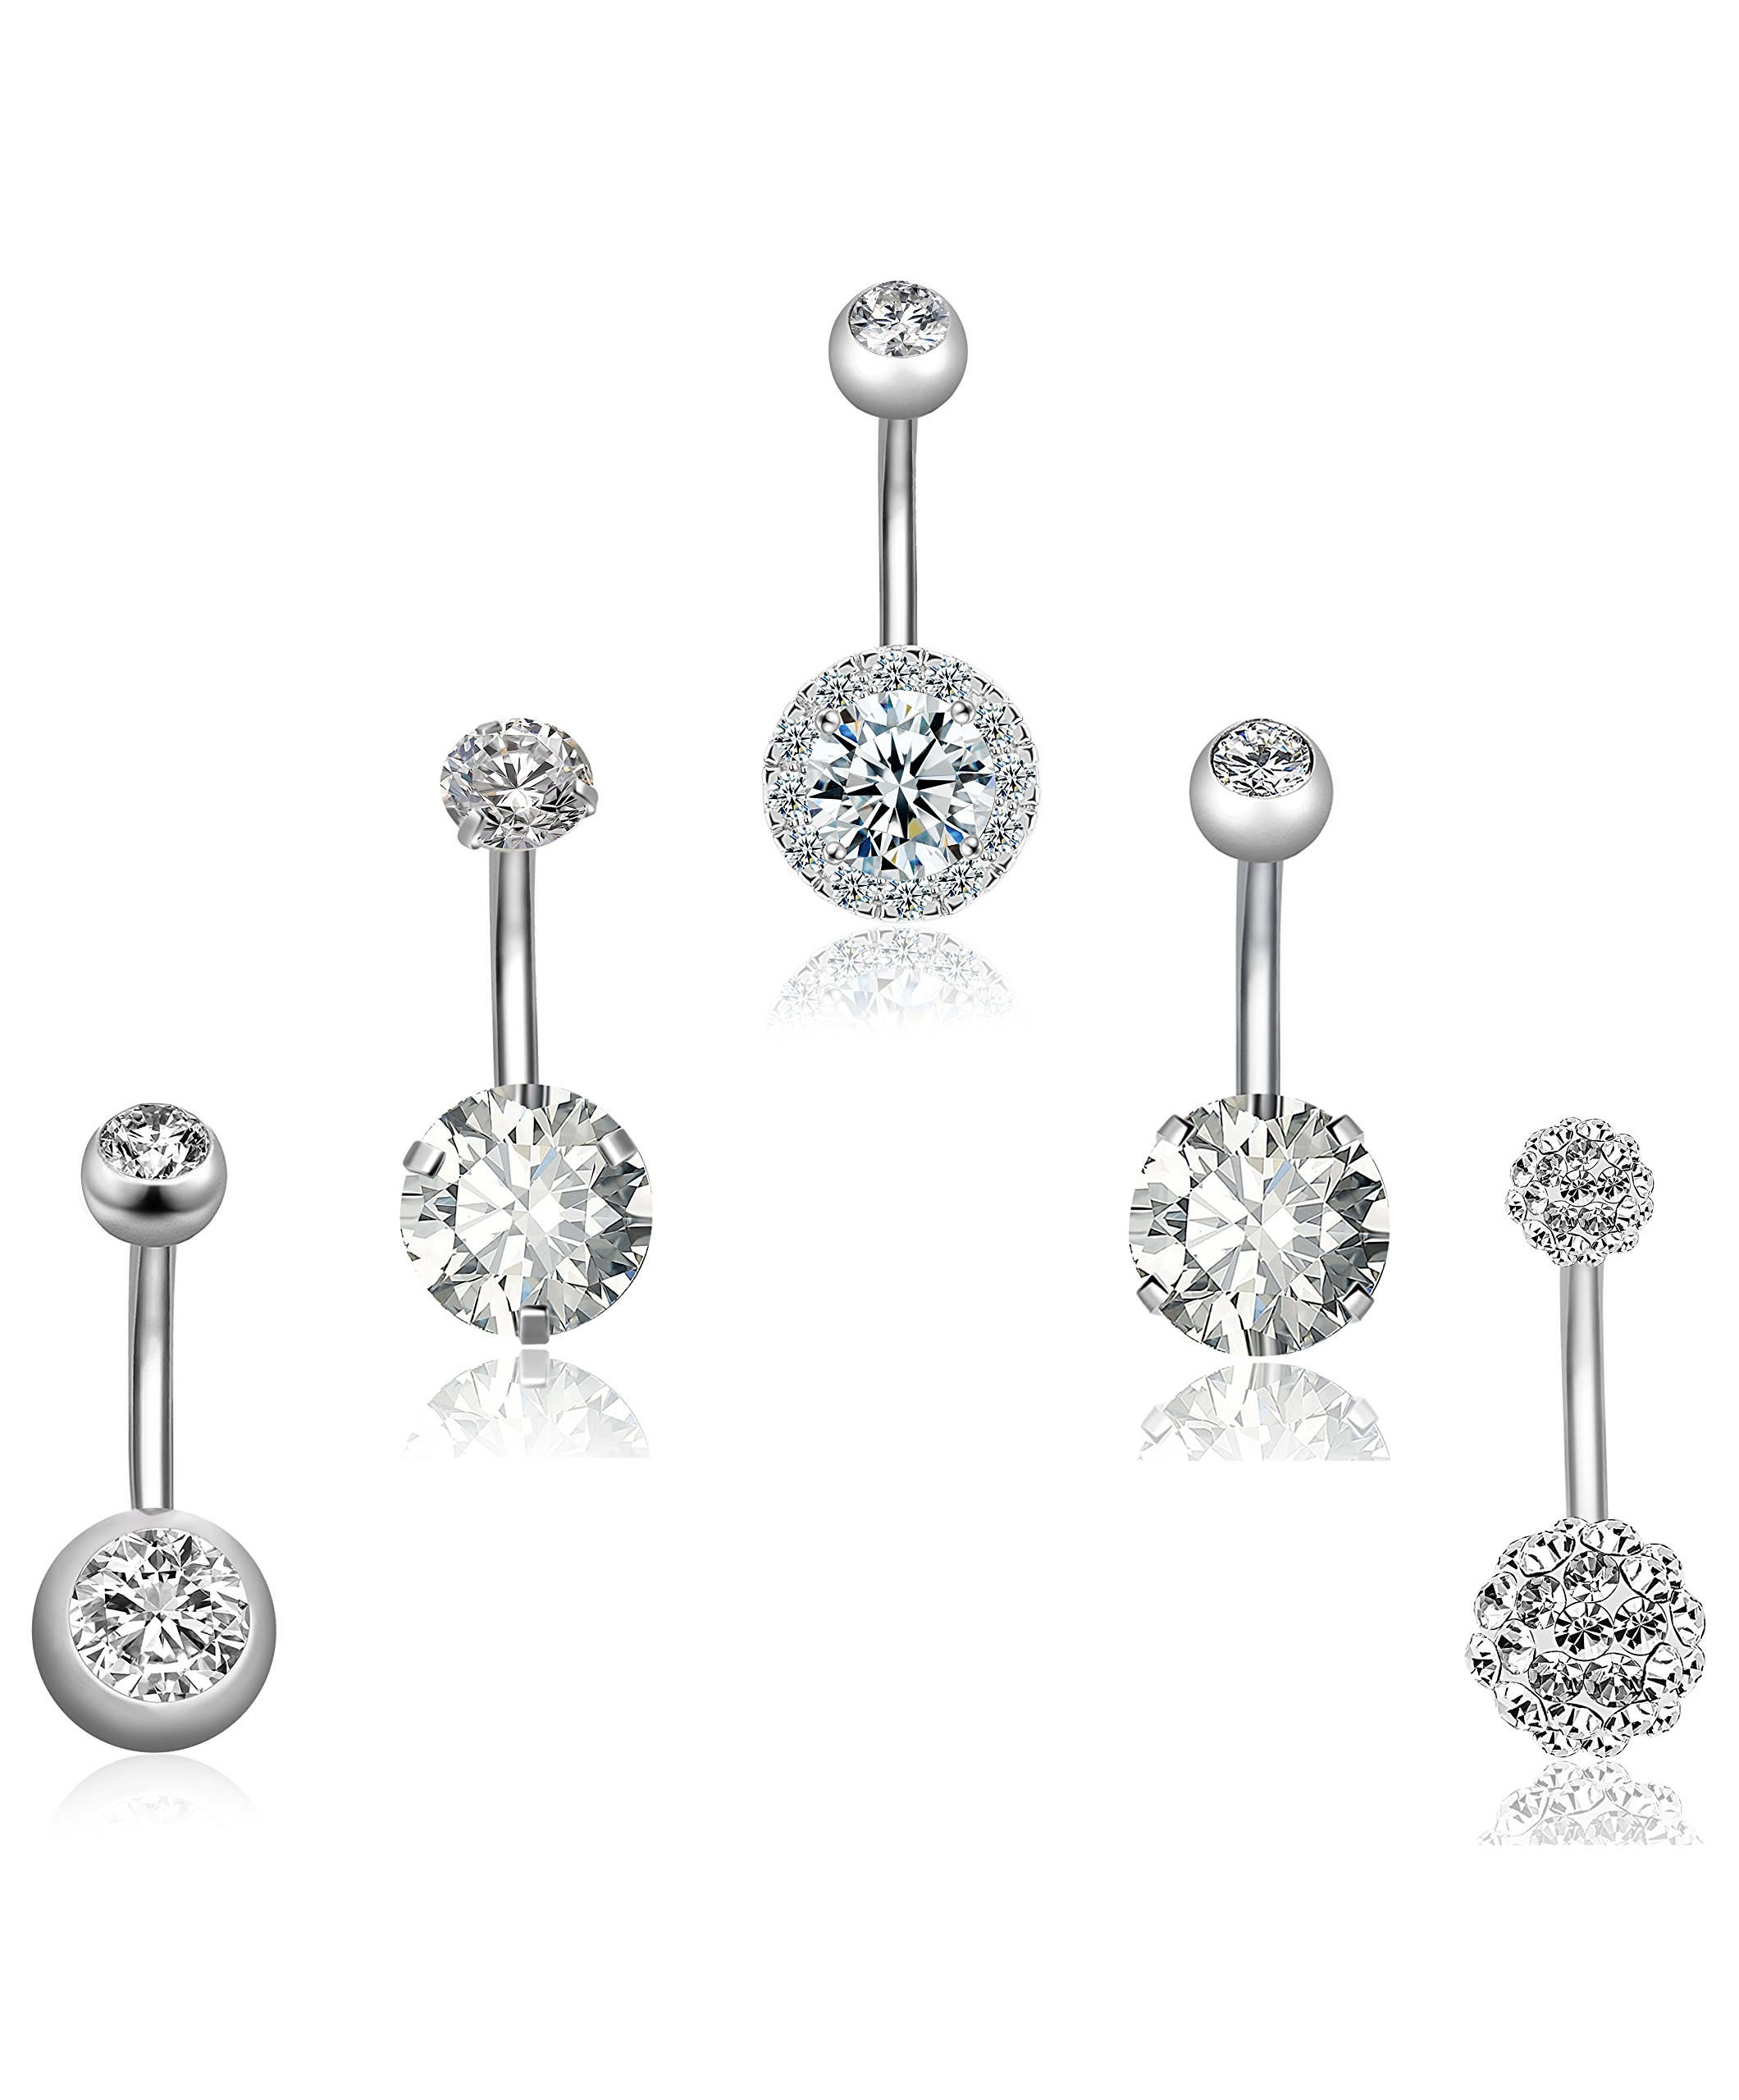 REVOLIA 5Pcs 14G Stainless Steel Belly Button Rings for Women Girls Navel Rings CZ Body Piercing S by REVOLIA (Image #2)